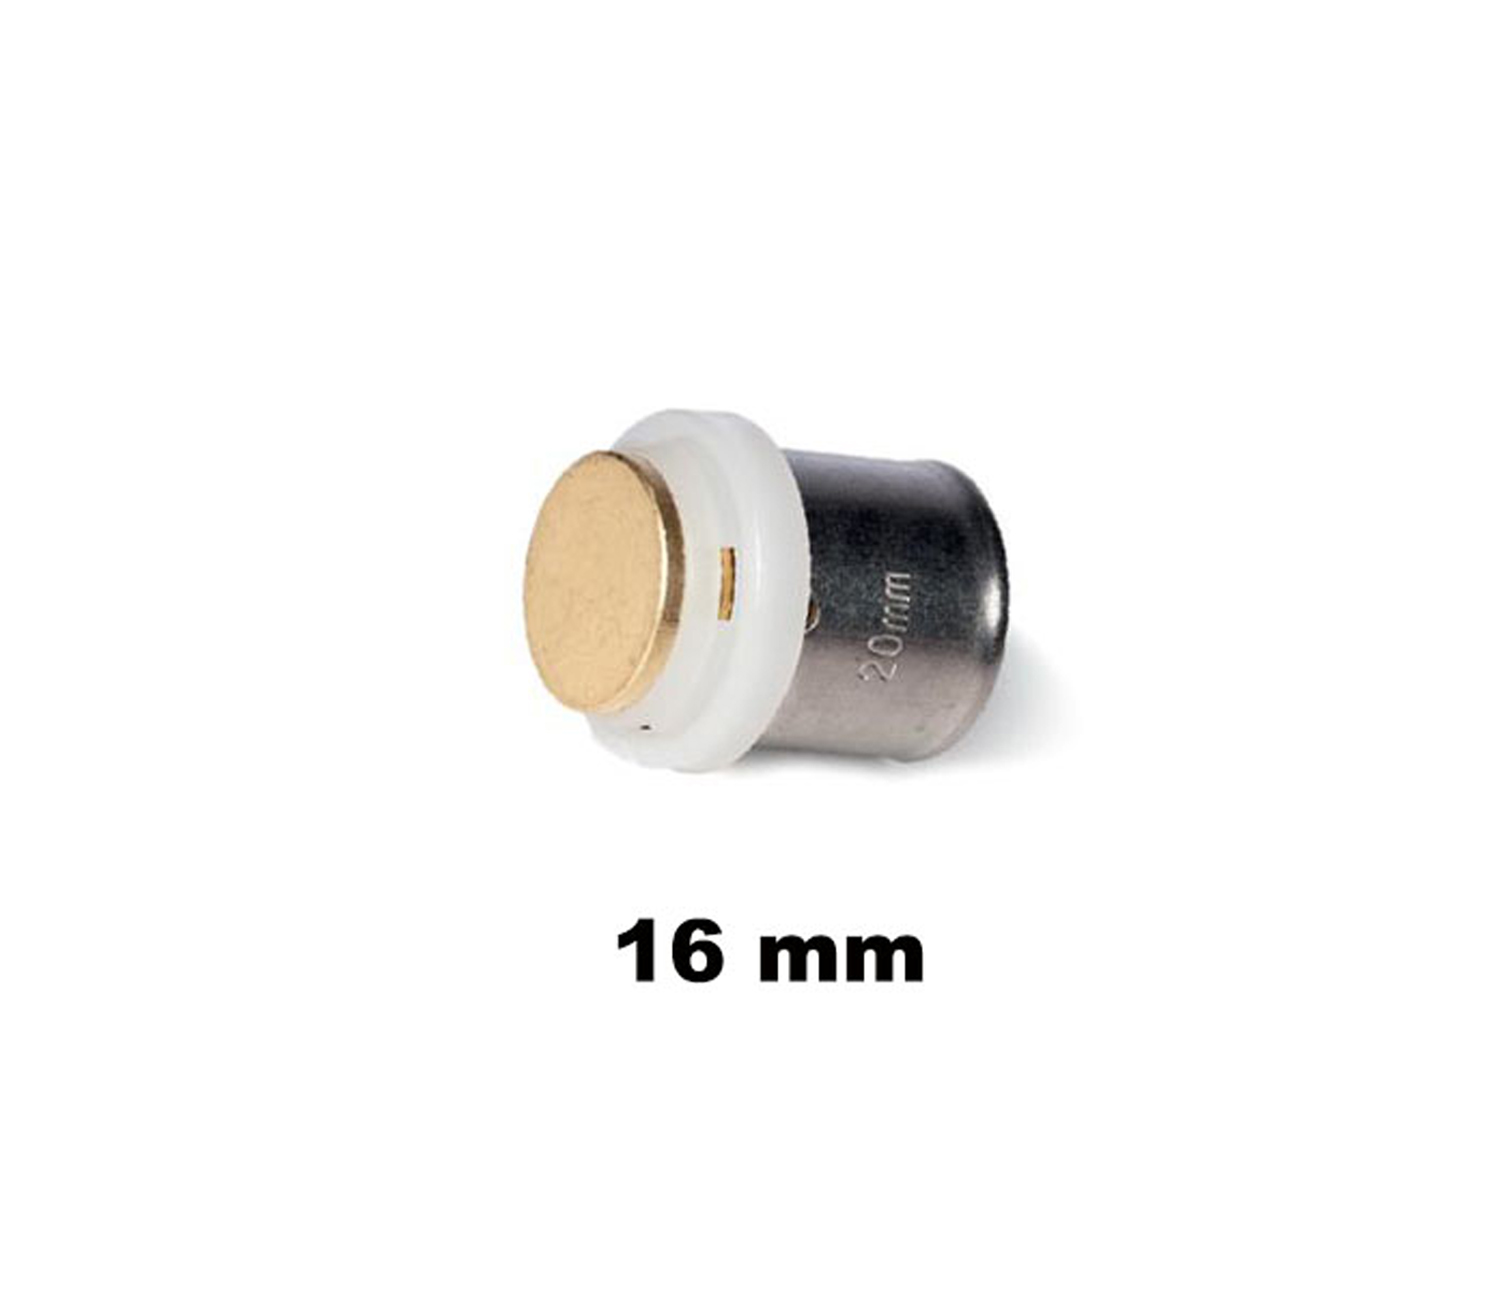 Stop End 16mm (51001)